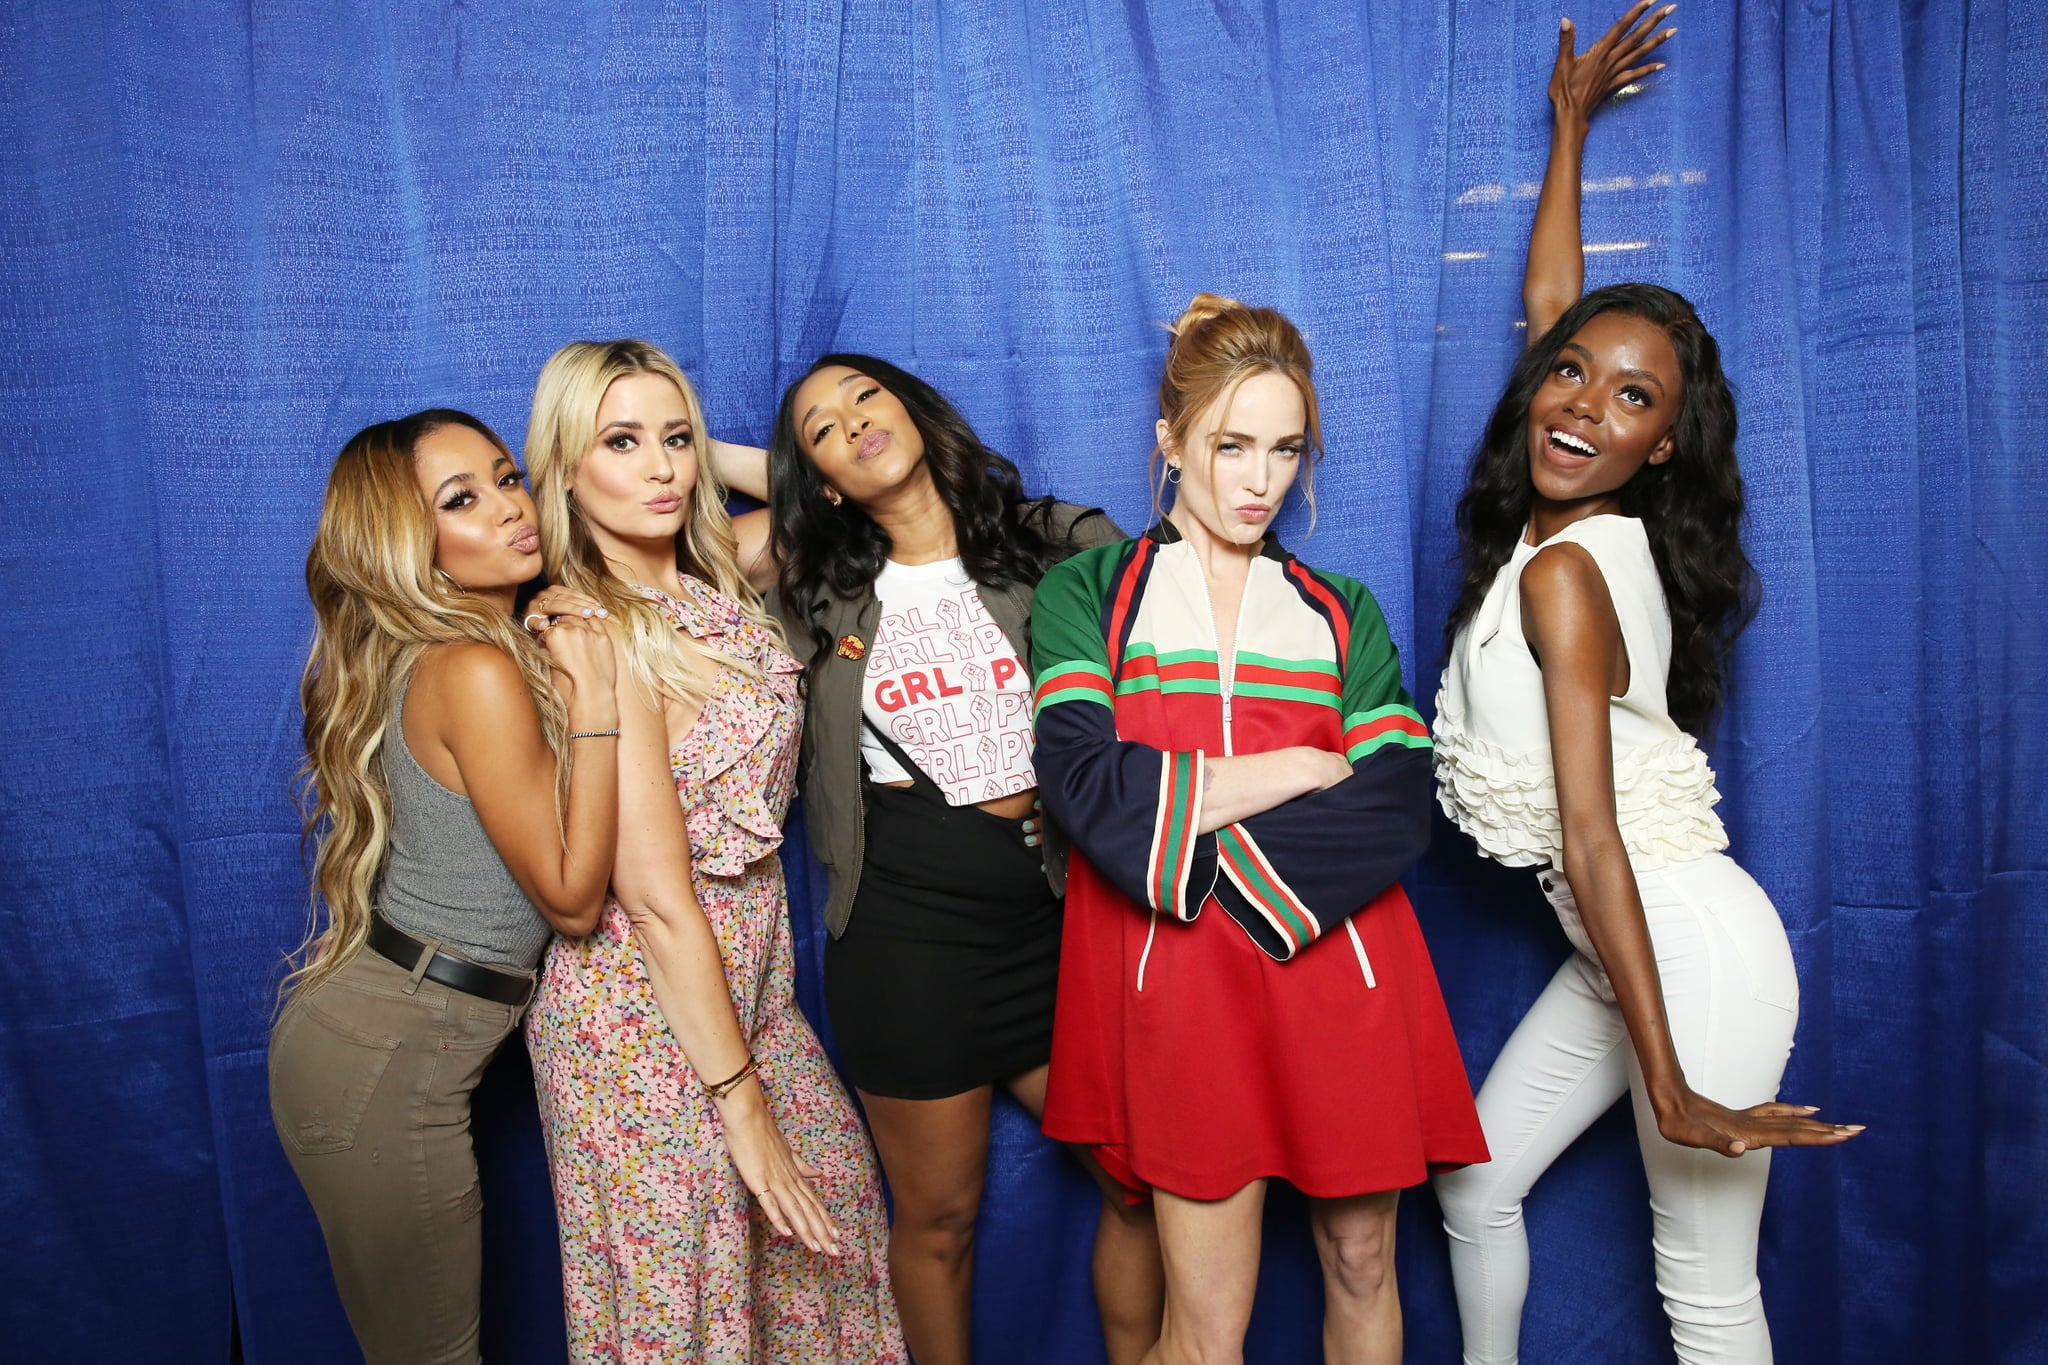 Pictured: Vanessa Morgan, Kirbie Johnson, Candice Patton, Caity Lotz, and Ashleigh Murray